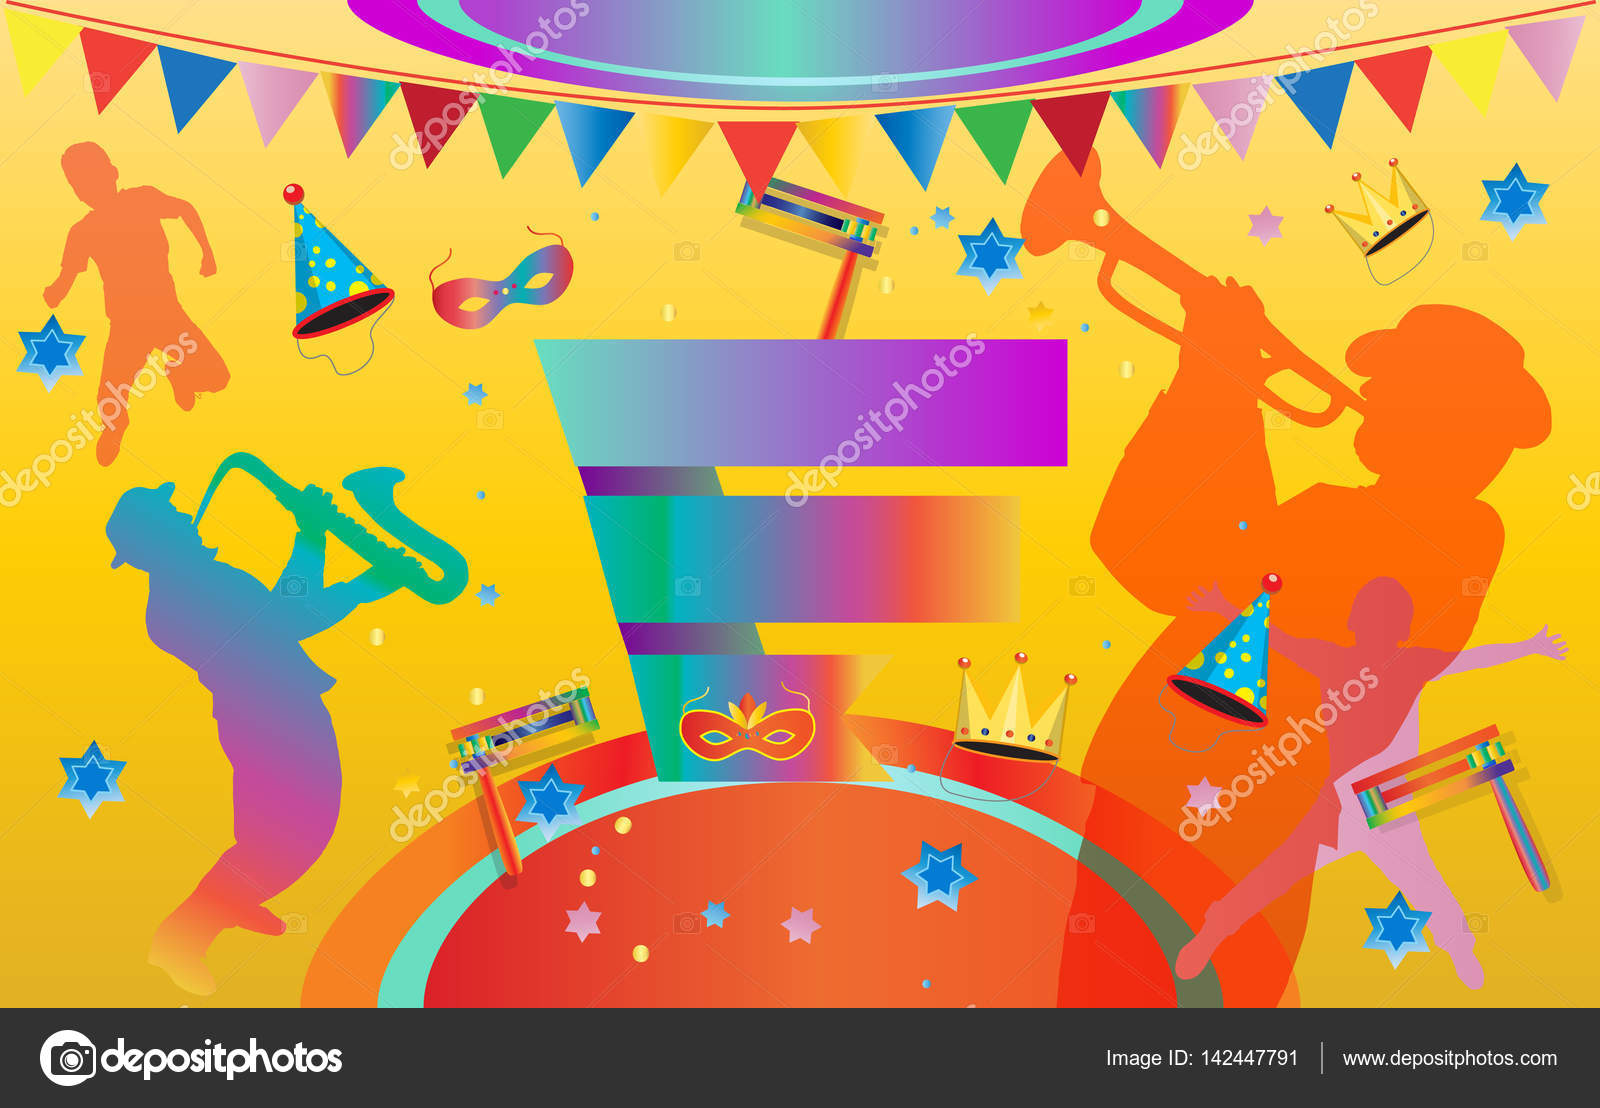 depositphotos_142447791-stock-illustration-happy-purim-carnival-festival-masquerade